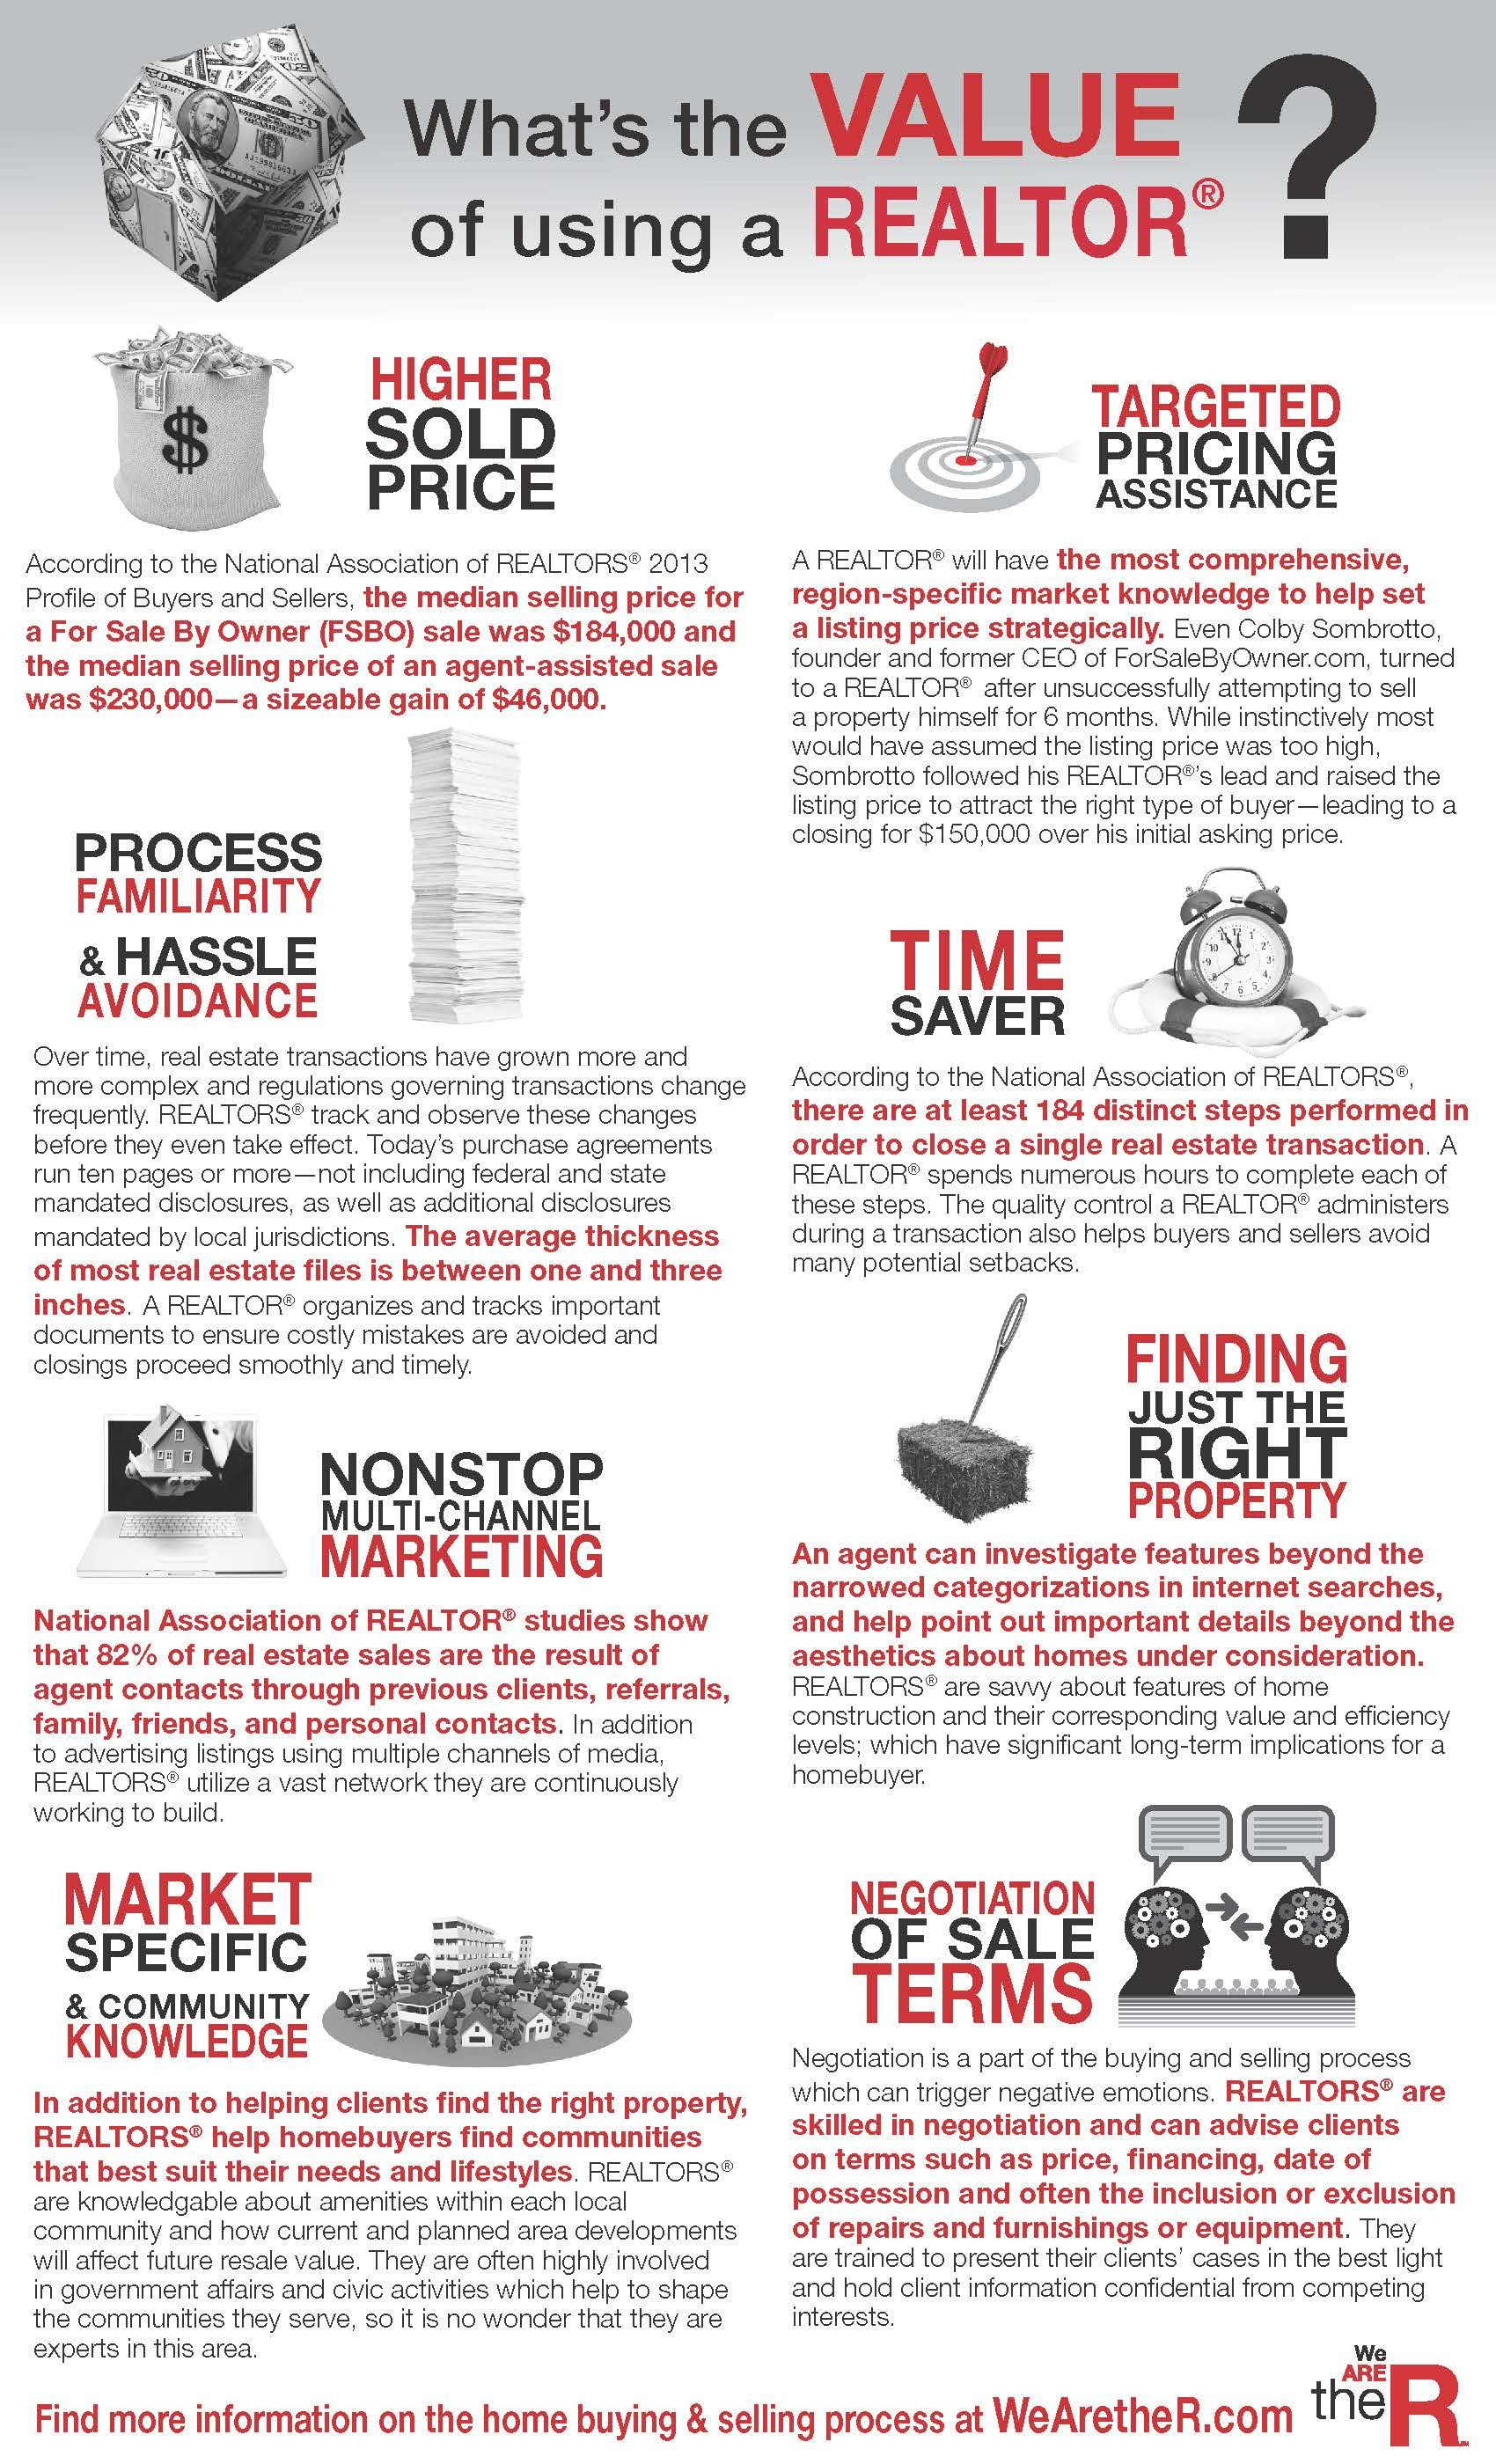 Pin By Kate Landis On Expert Advice Real Estate Slogans Real Estate Marketing Real Estate News